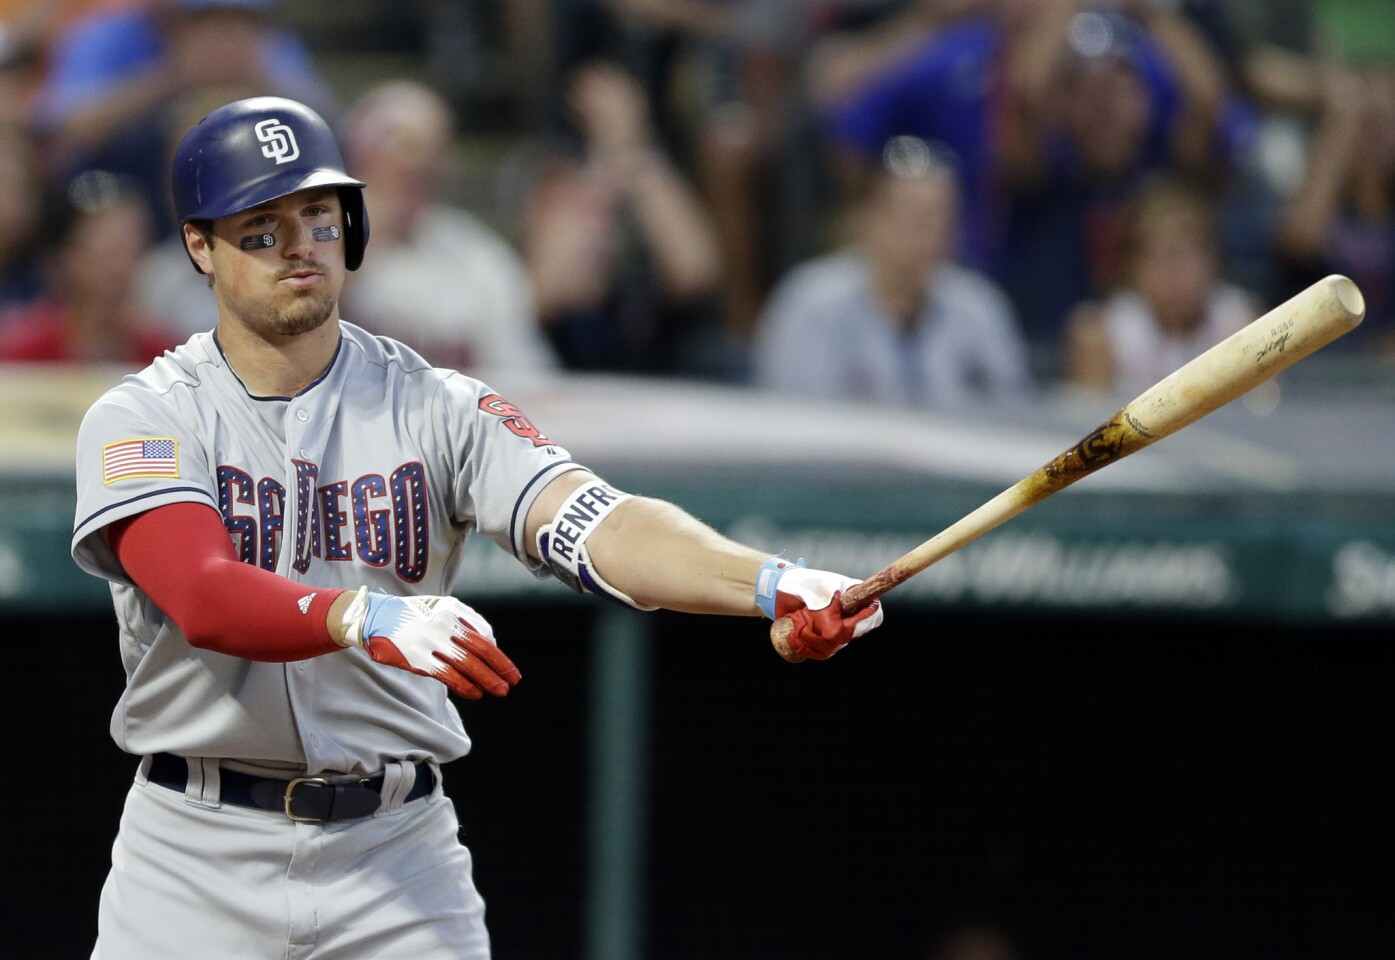 San Diego Padres' Hunter Renfroe reacts after striking out against Cleveland Indians starting pitcher Corey Kluber in the sixth inning of a baseball game, Tuesday, July 4, 2017, in Cleveland. (AP Photo/Tony Dejak)